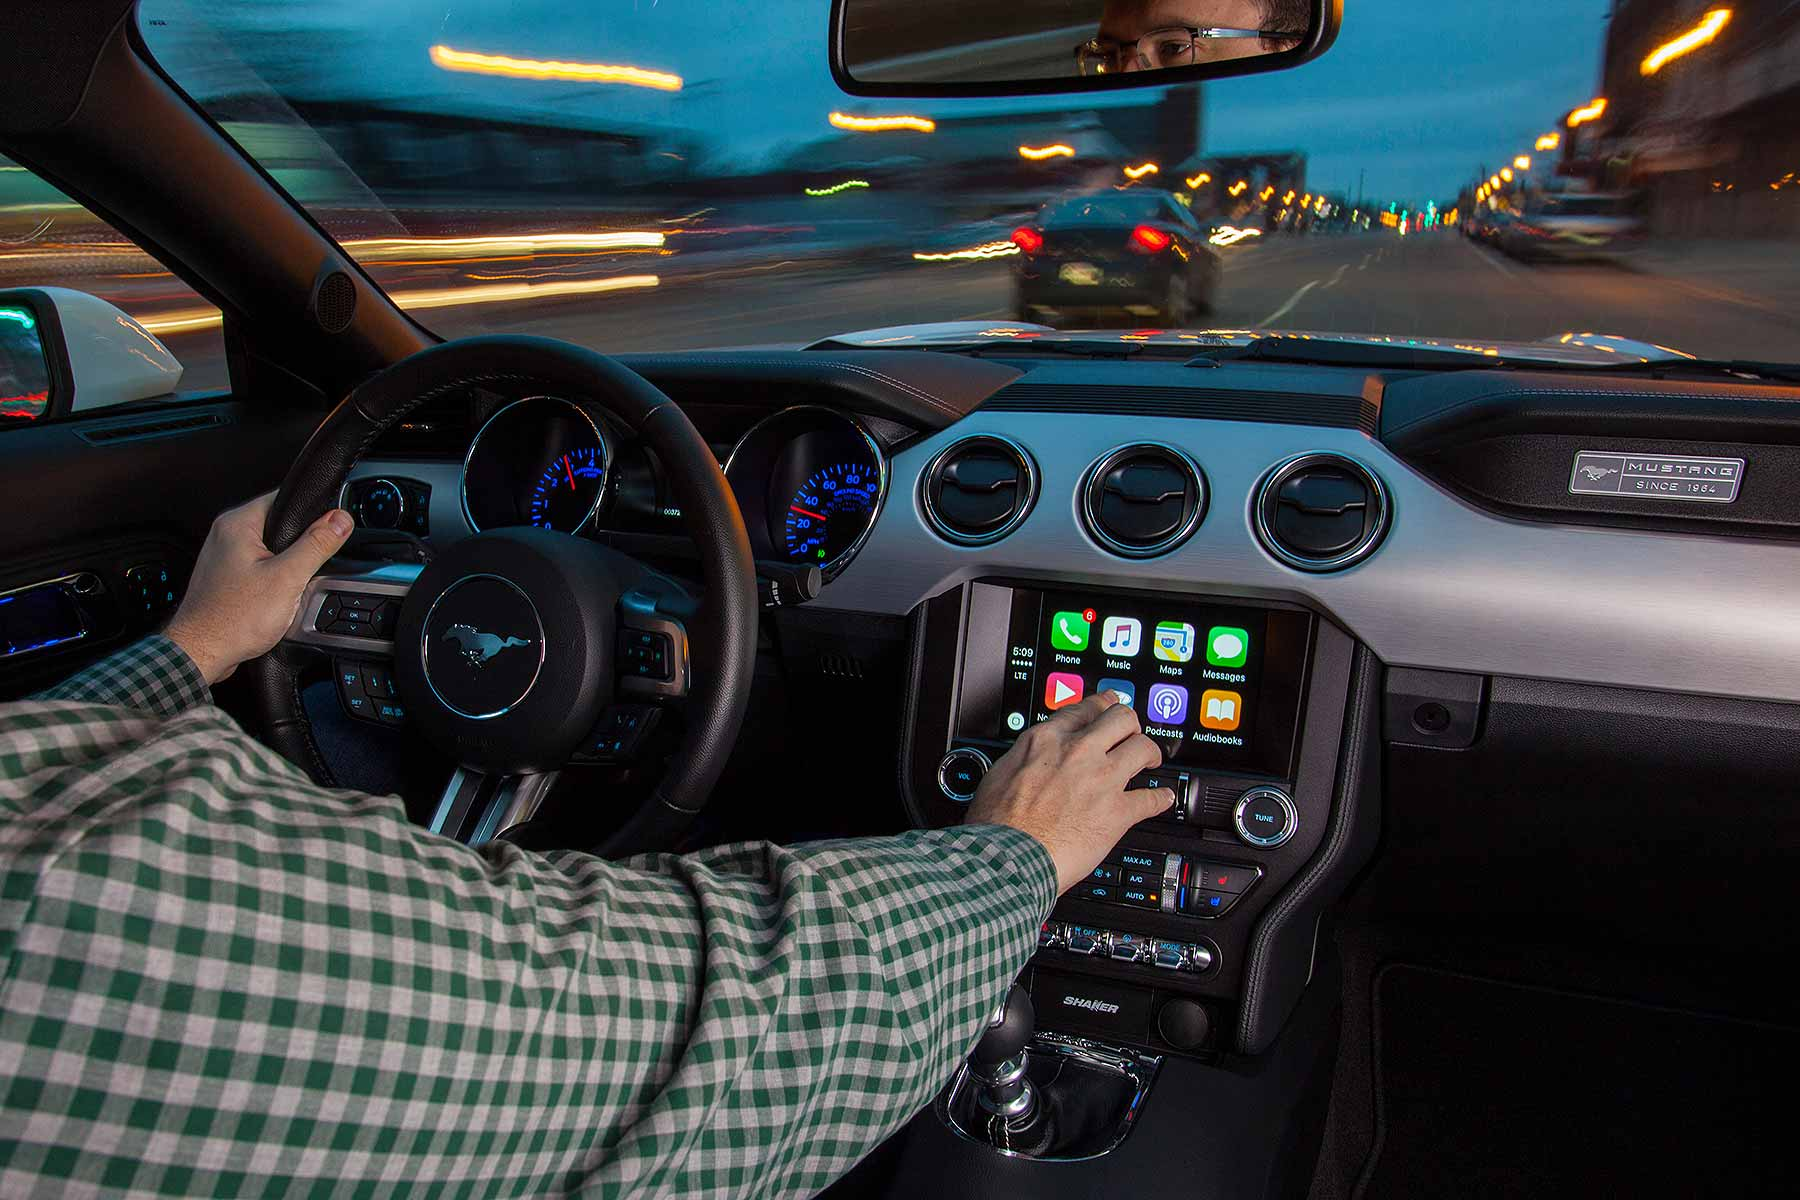 ces 2016 ford sync gets apple carplay android auto at last motoring research. Black Bedroom Furniture Sets. Home Design Ideas